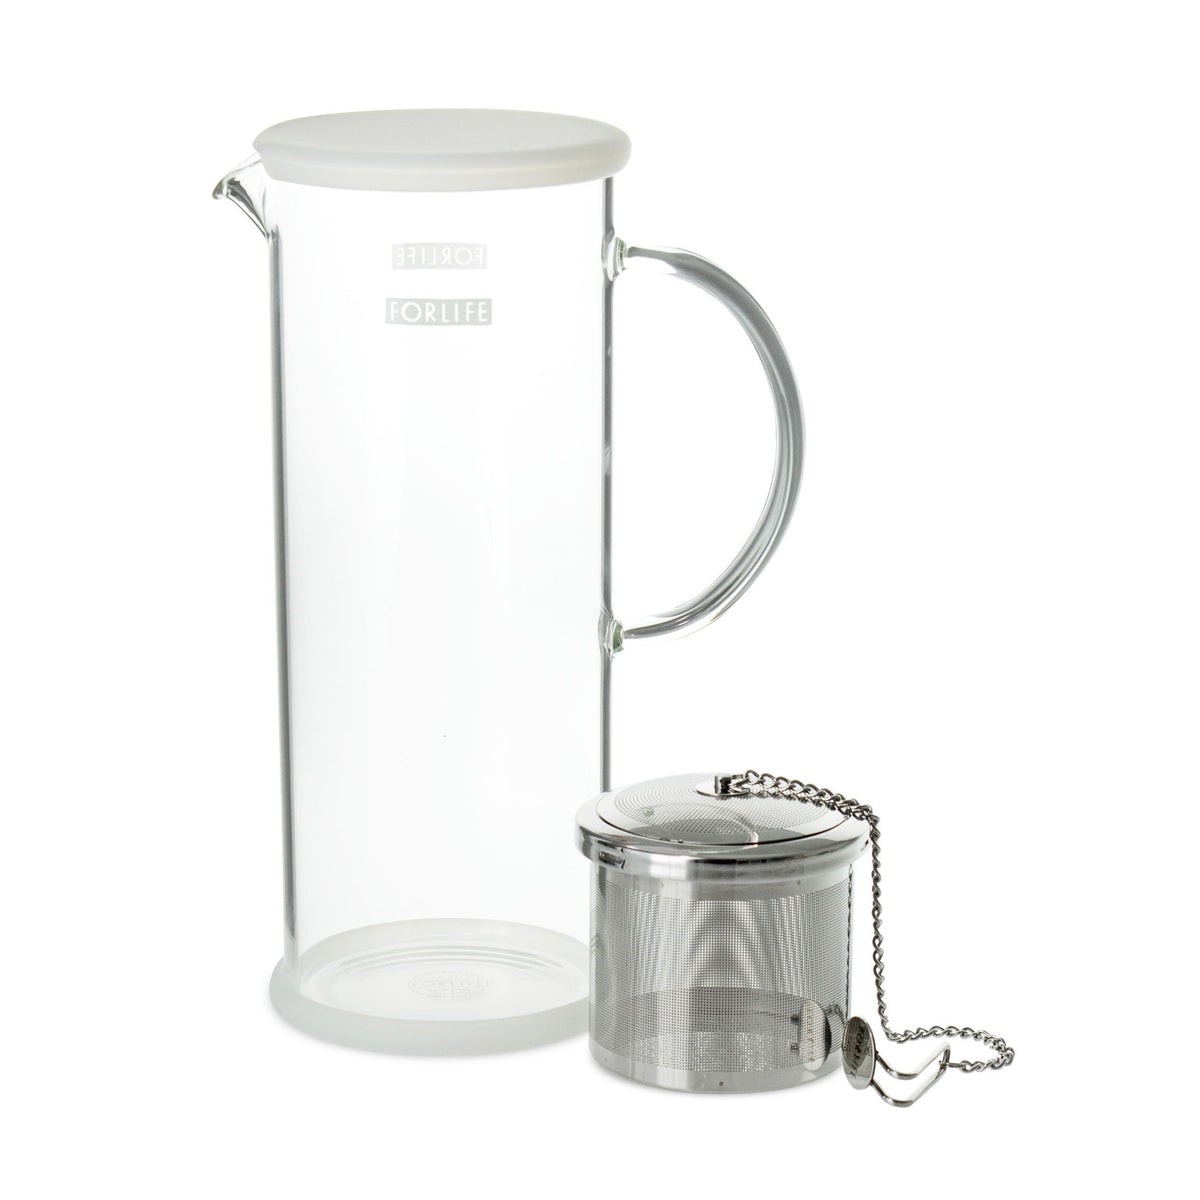 Lucent Tea Jug with Capsule Infuser - Teaware - Red Stick Spice Company